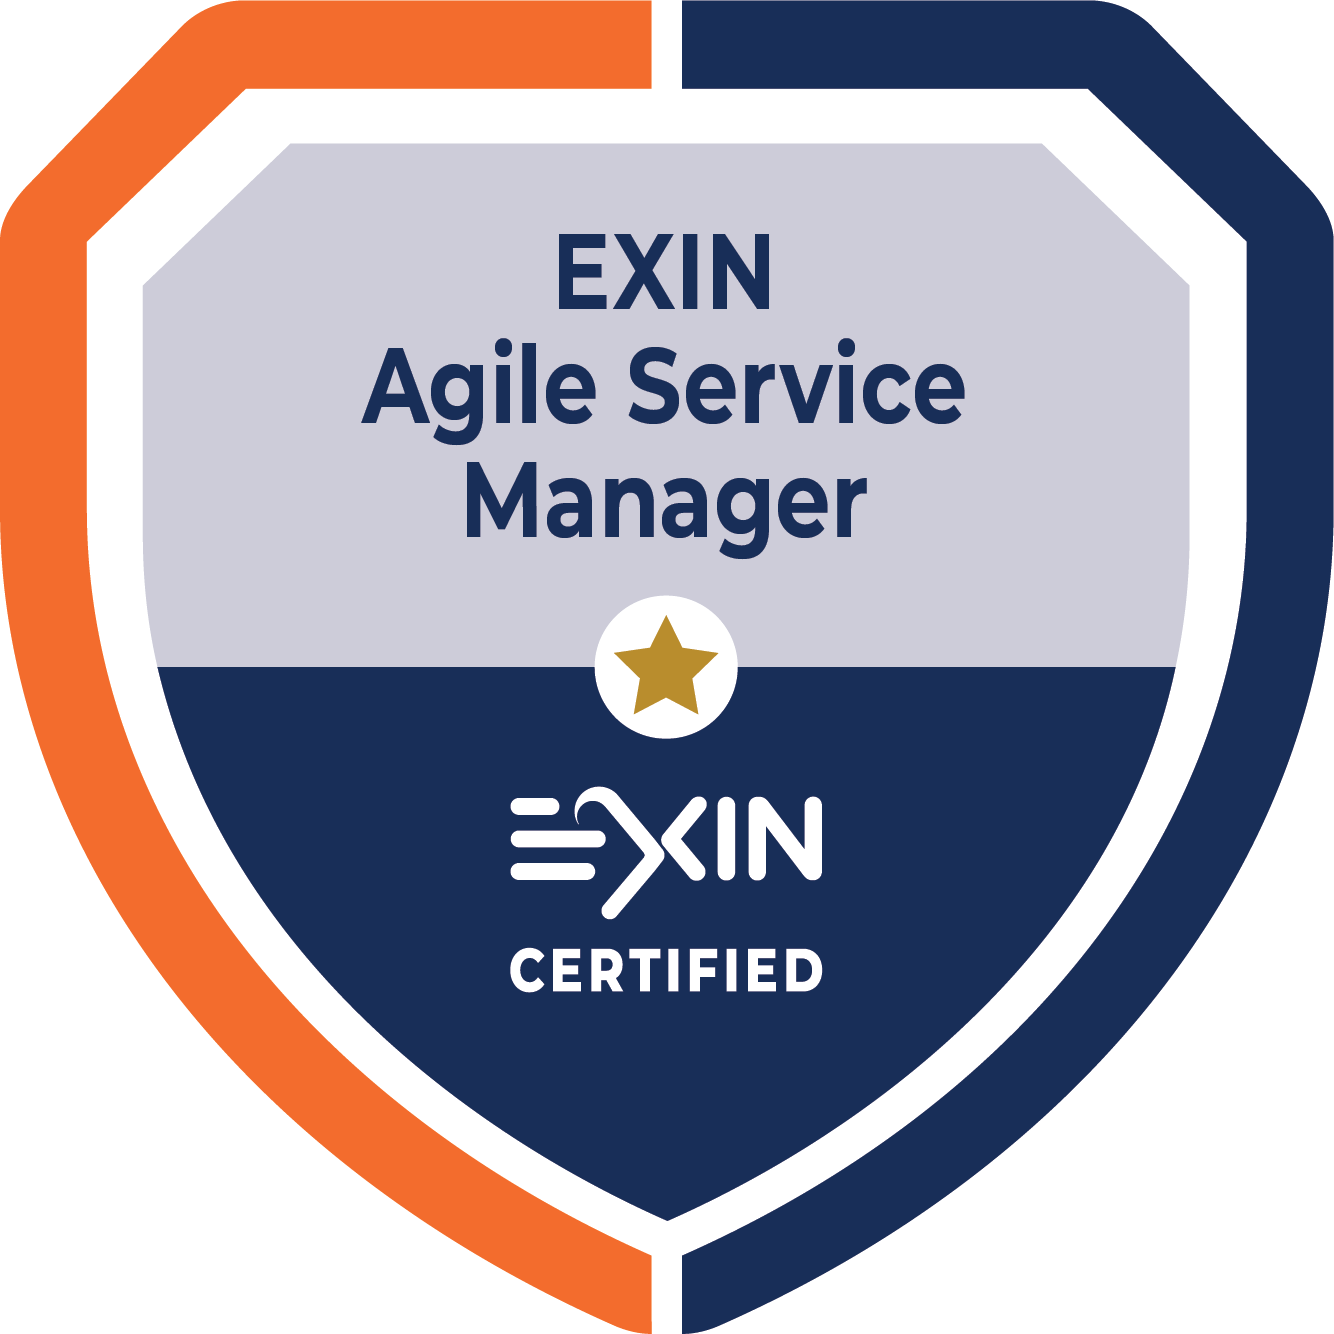 EXIN Certified Agile Service Manager